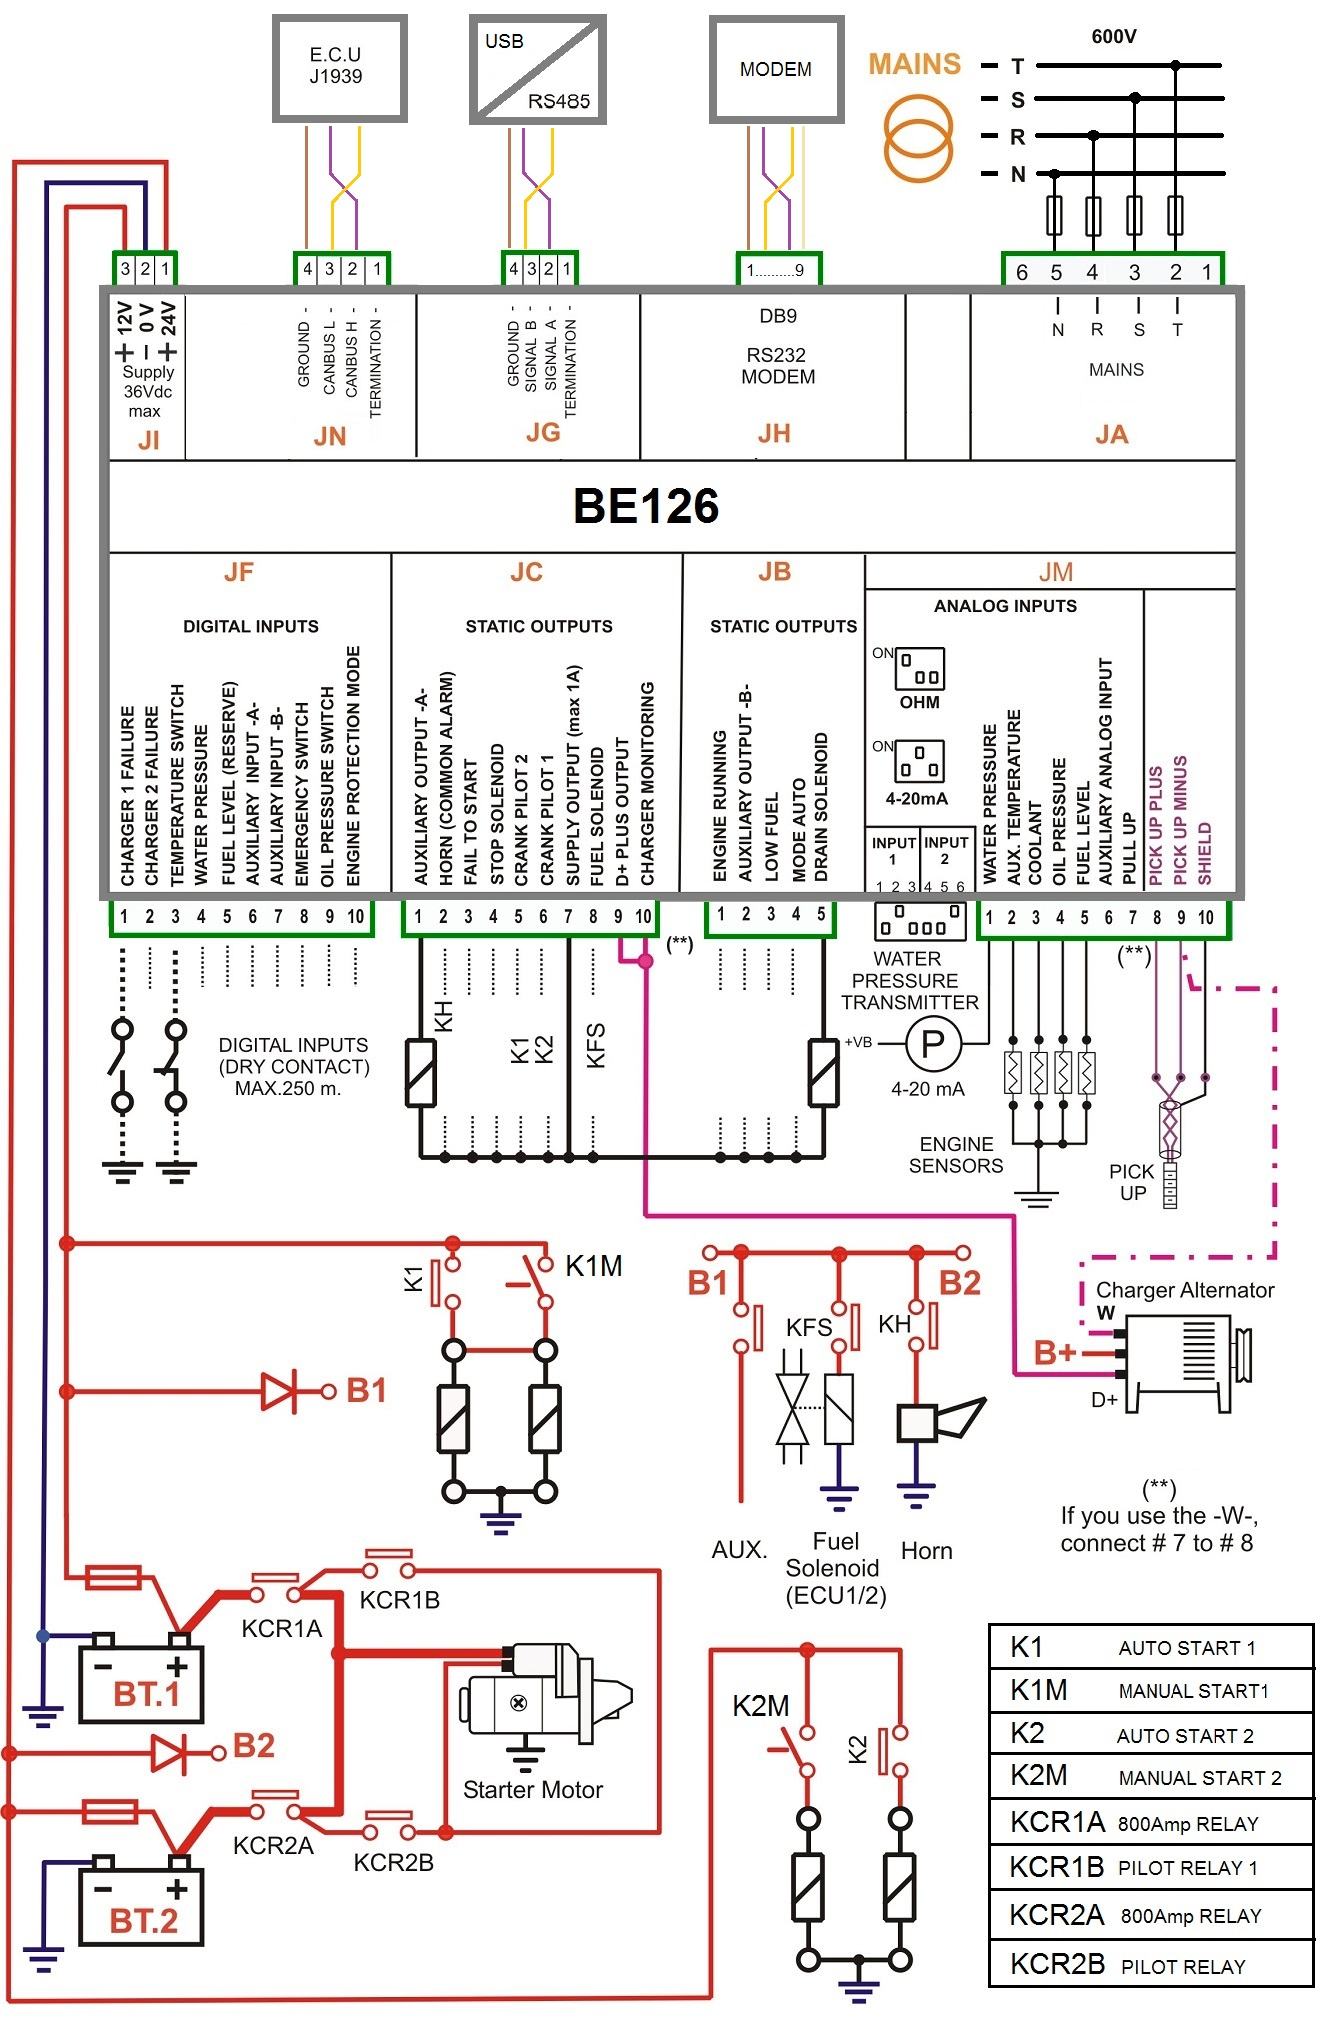 Electrical Wiring Diagram For Water Pump Motor Set : Fire pump controller wiring diagram genset